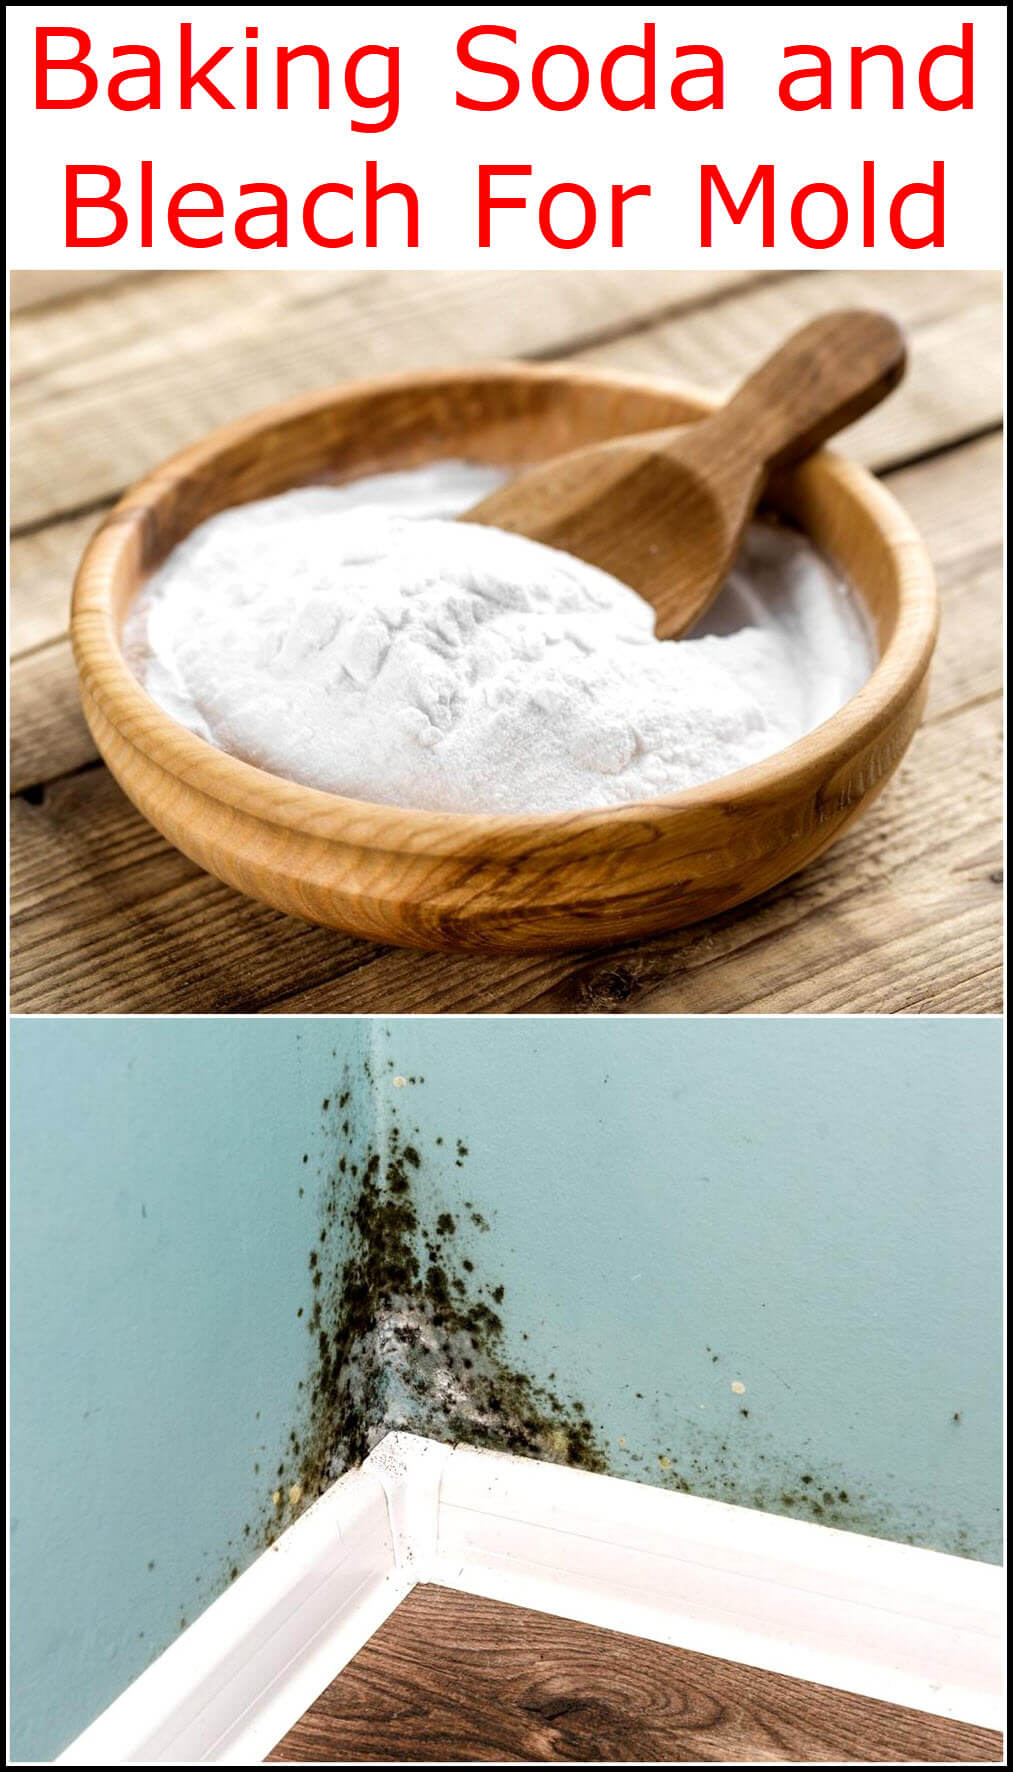 Baking Soda and Bleach For Mold